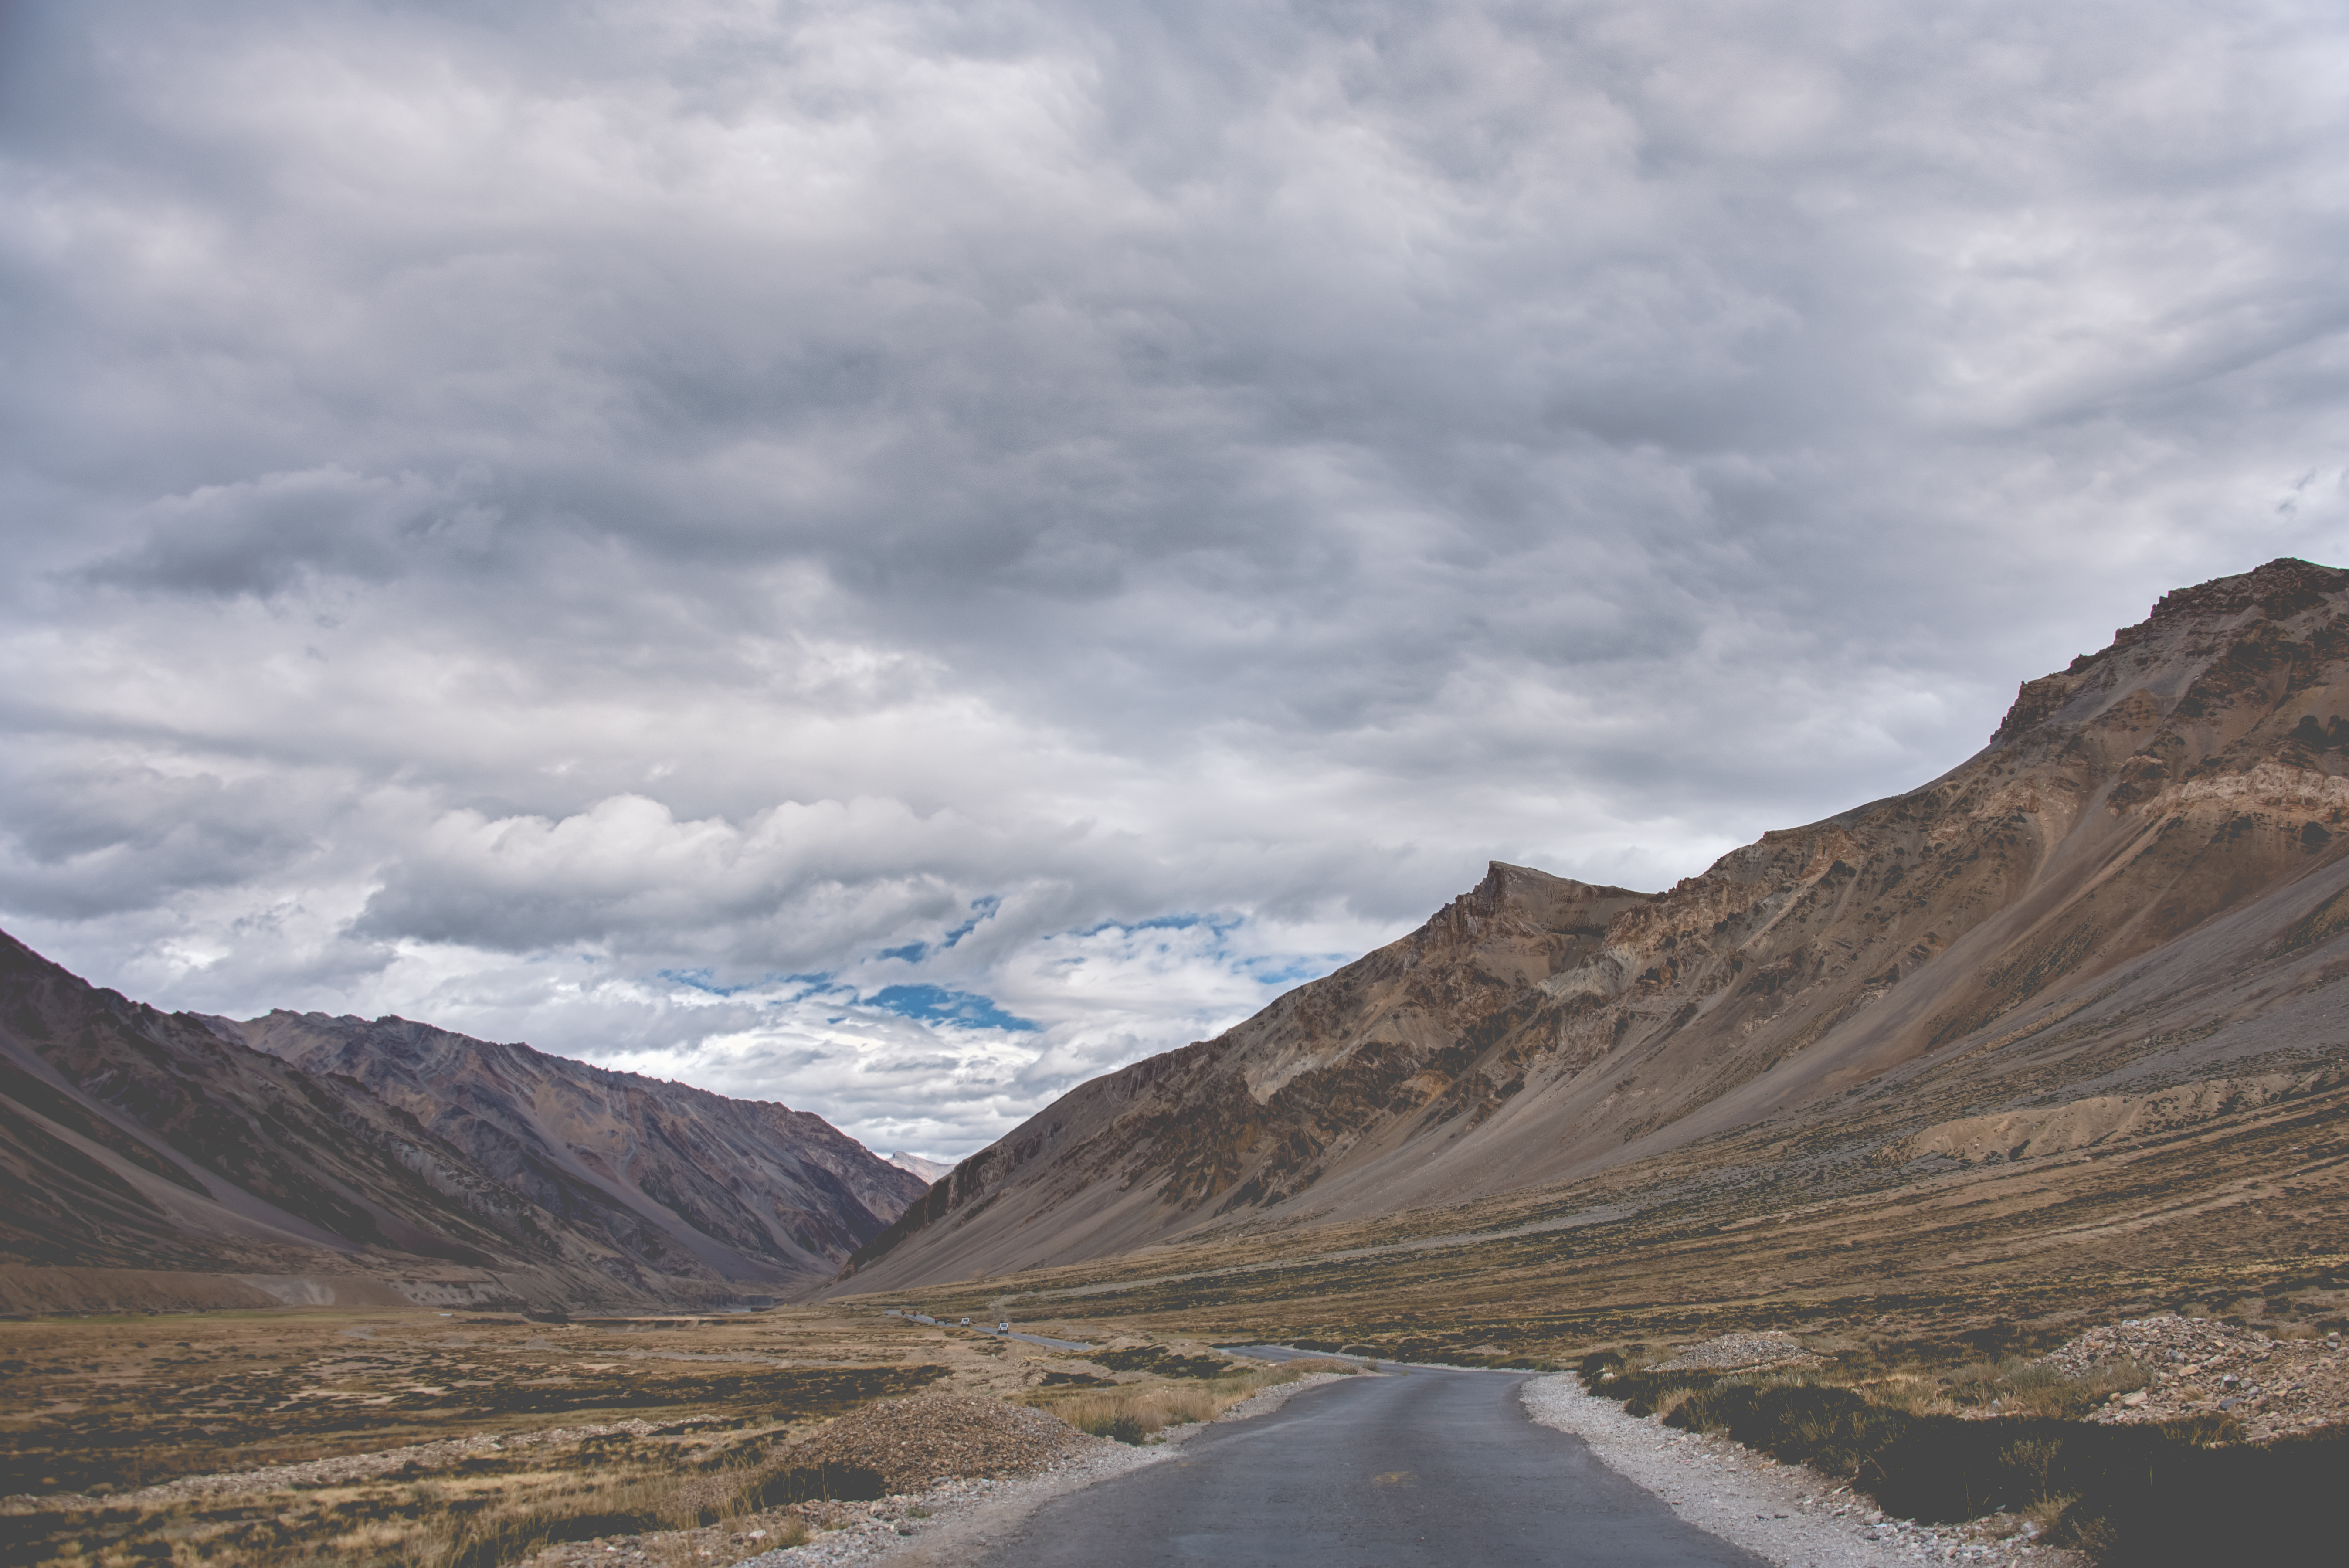 Cool Landscape Of Ladakh Region